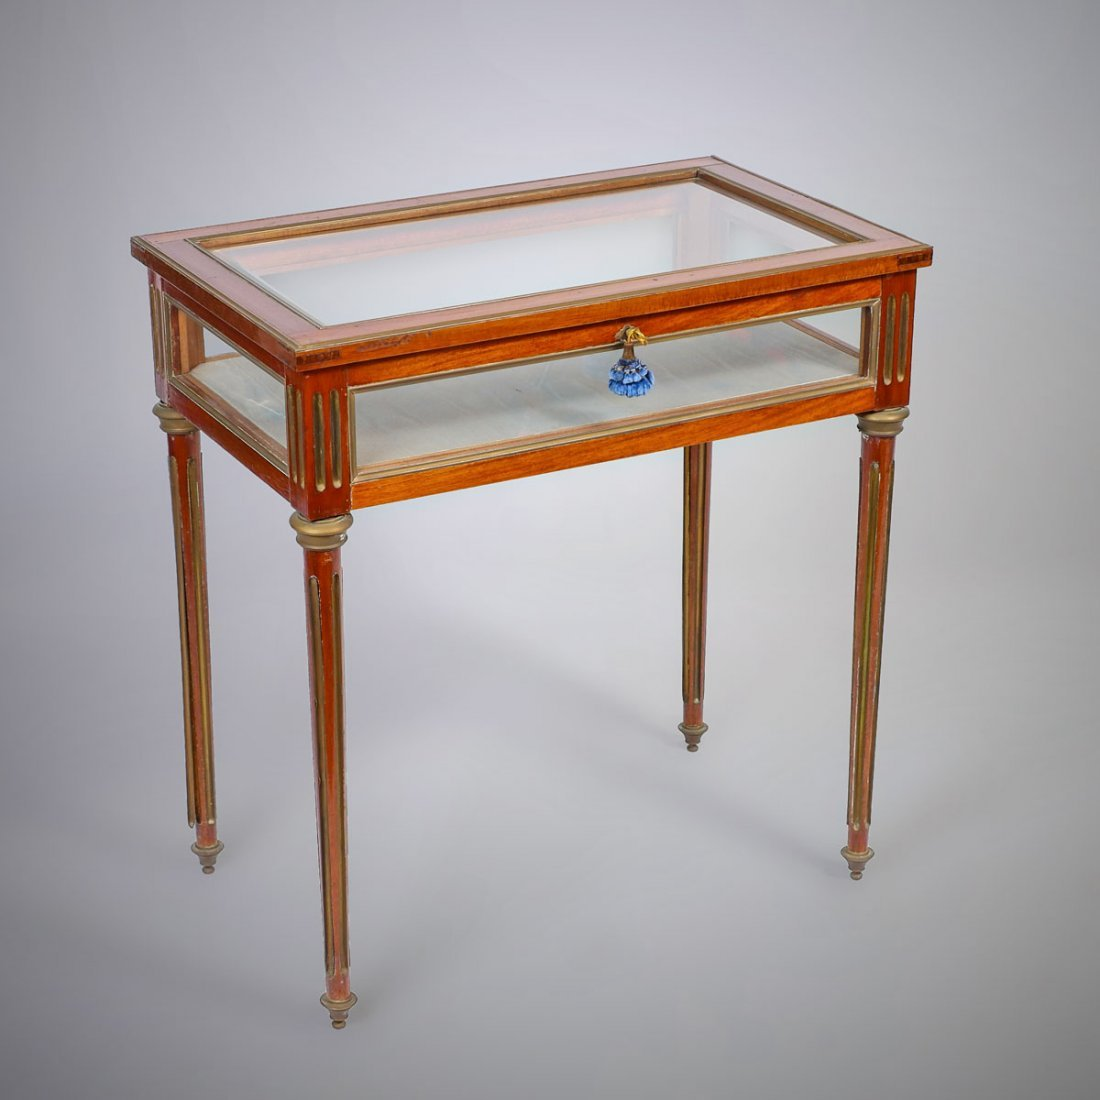 FRENCH EMPIRE STYLE LIFT-TOP VITRINE